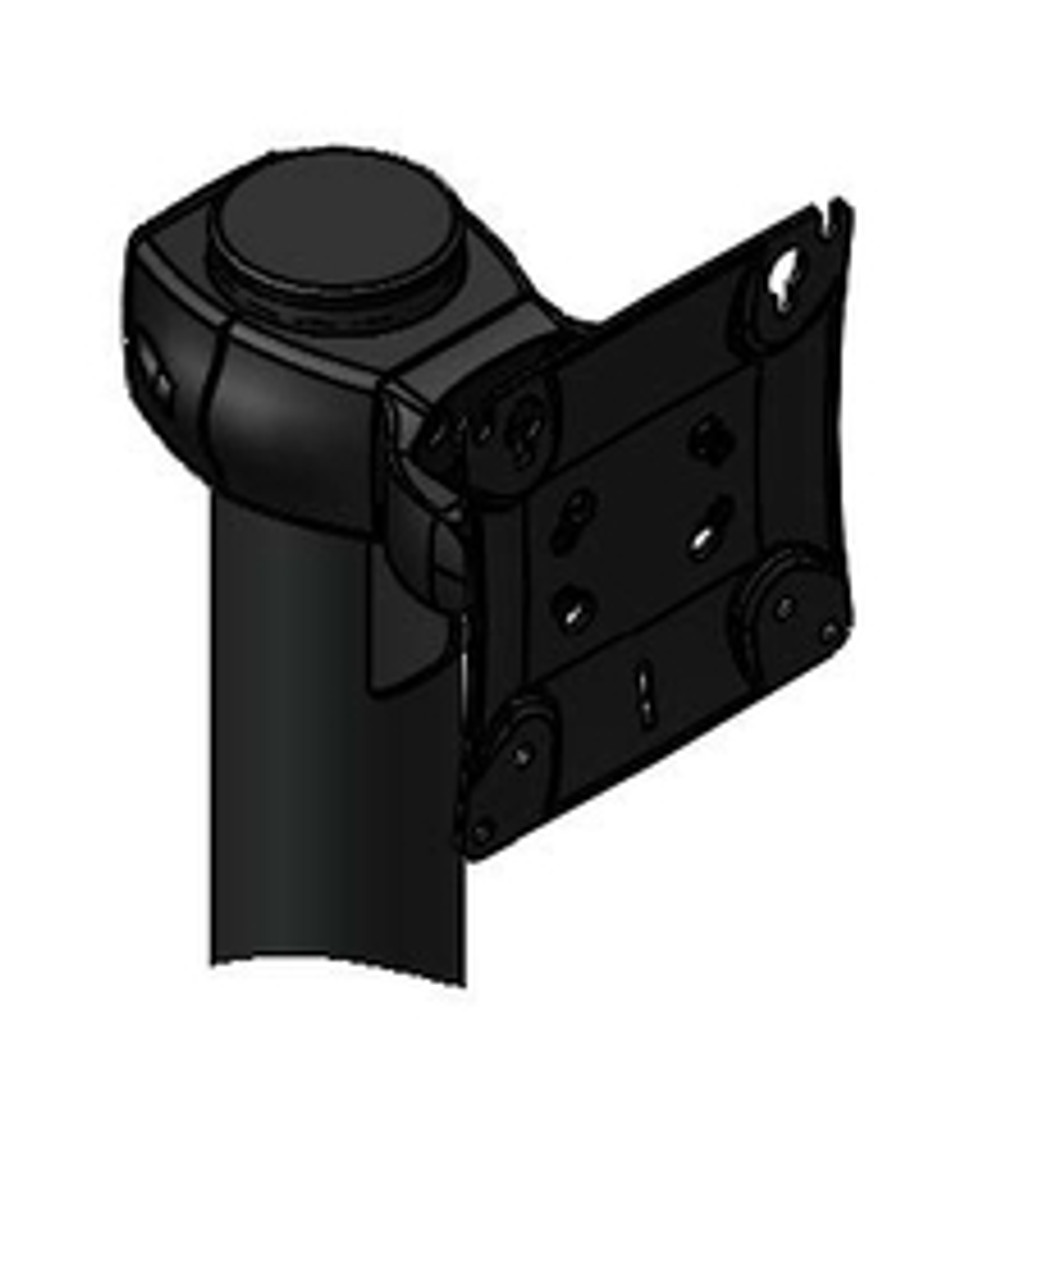 POS Monitor Pivot Single Genesis Pivot up down for 1 Device VESA Fixed Pole Clamp Included